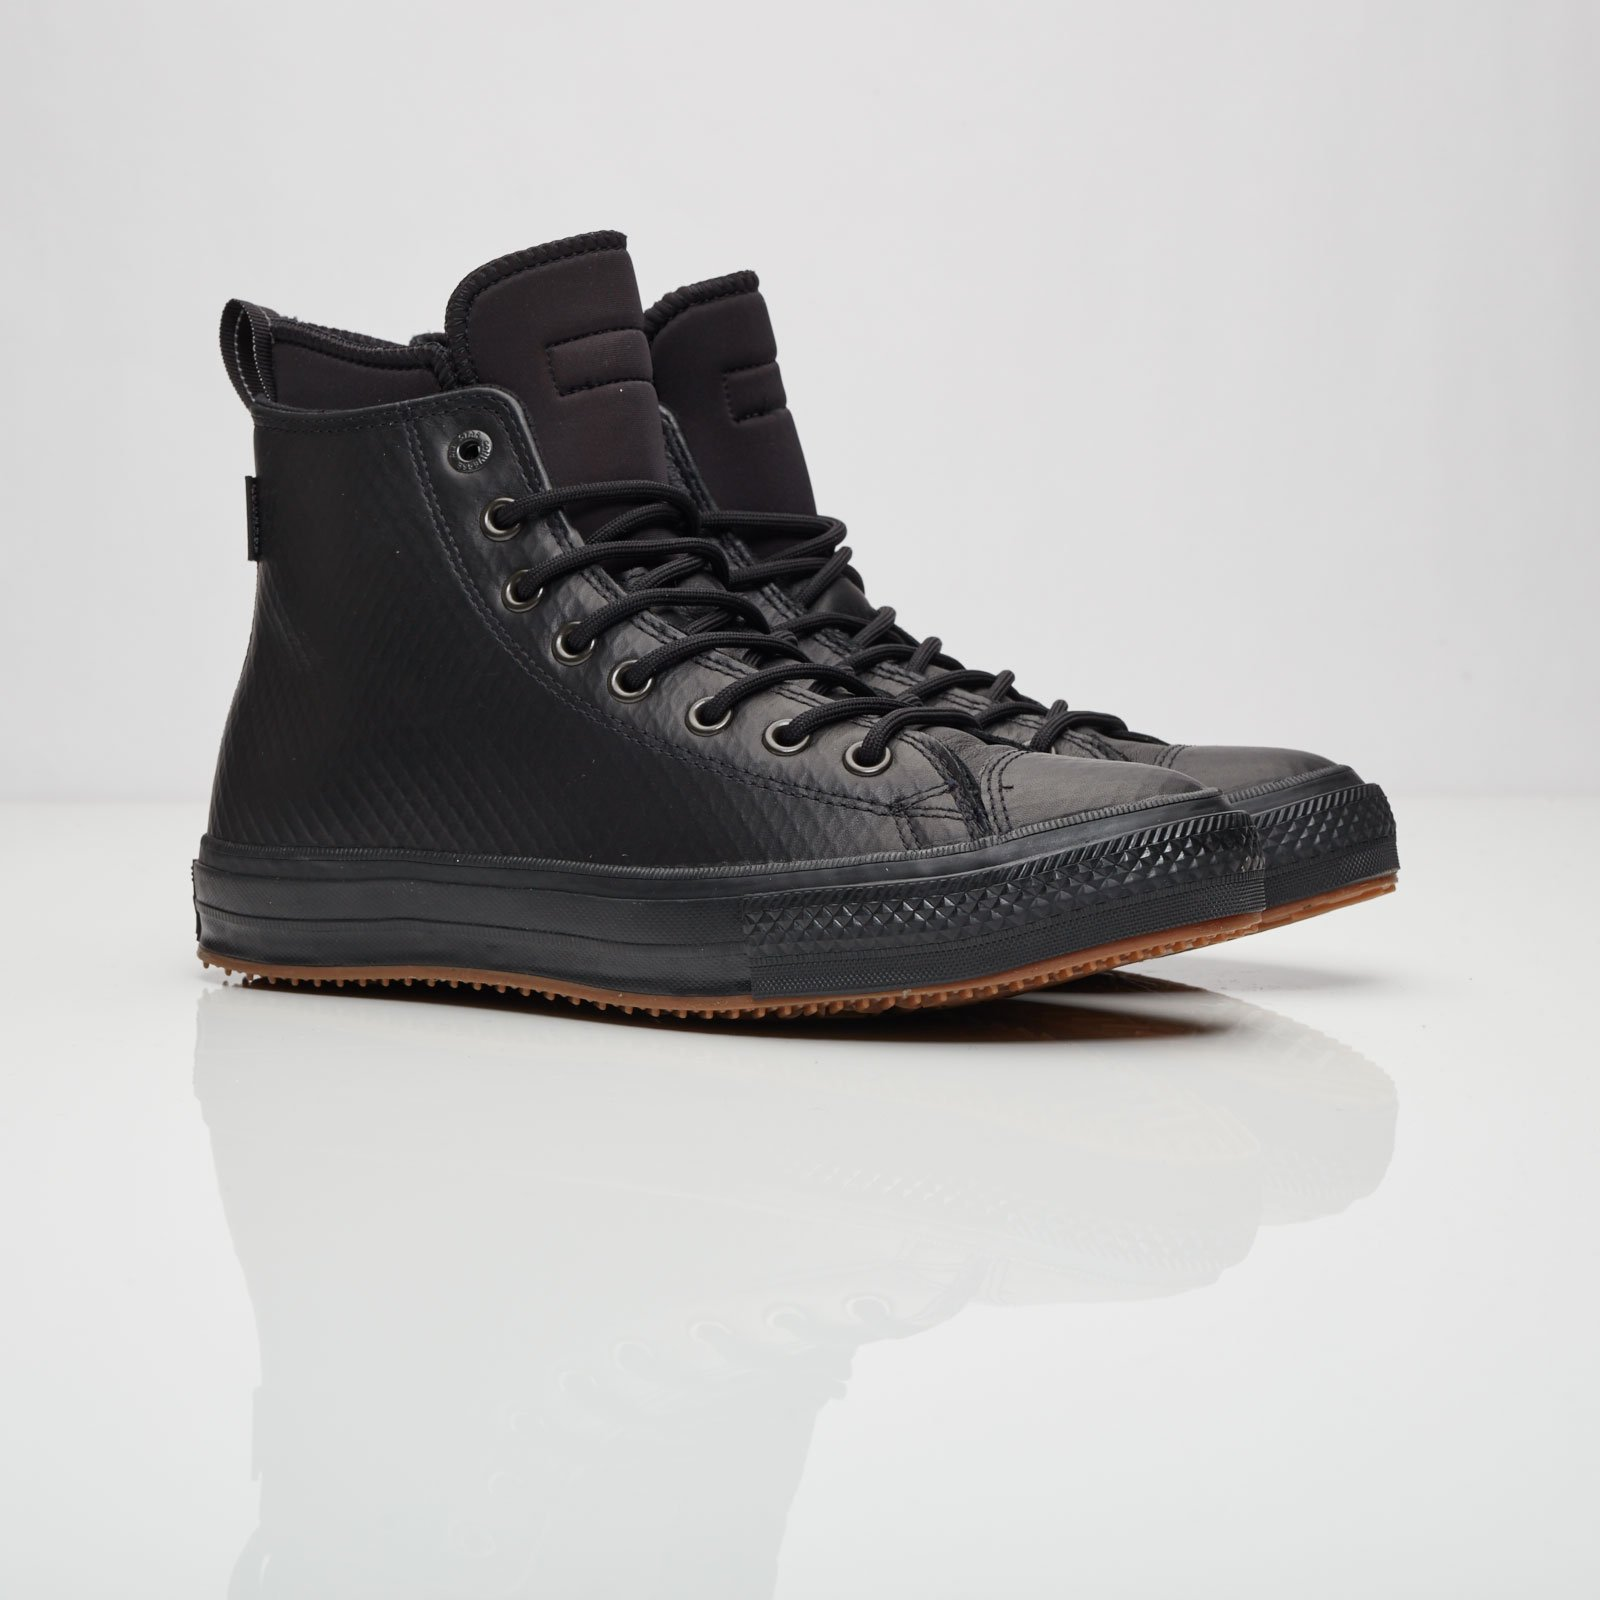 734fb1b13f29 Converse Chuck Taylor All Star II Boot Hi - 153571c - Sneakersnstuff ...